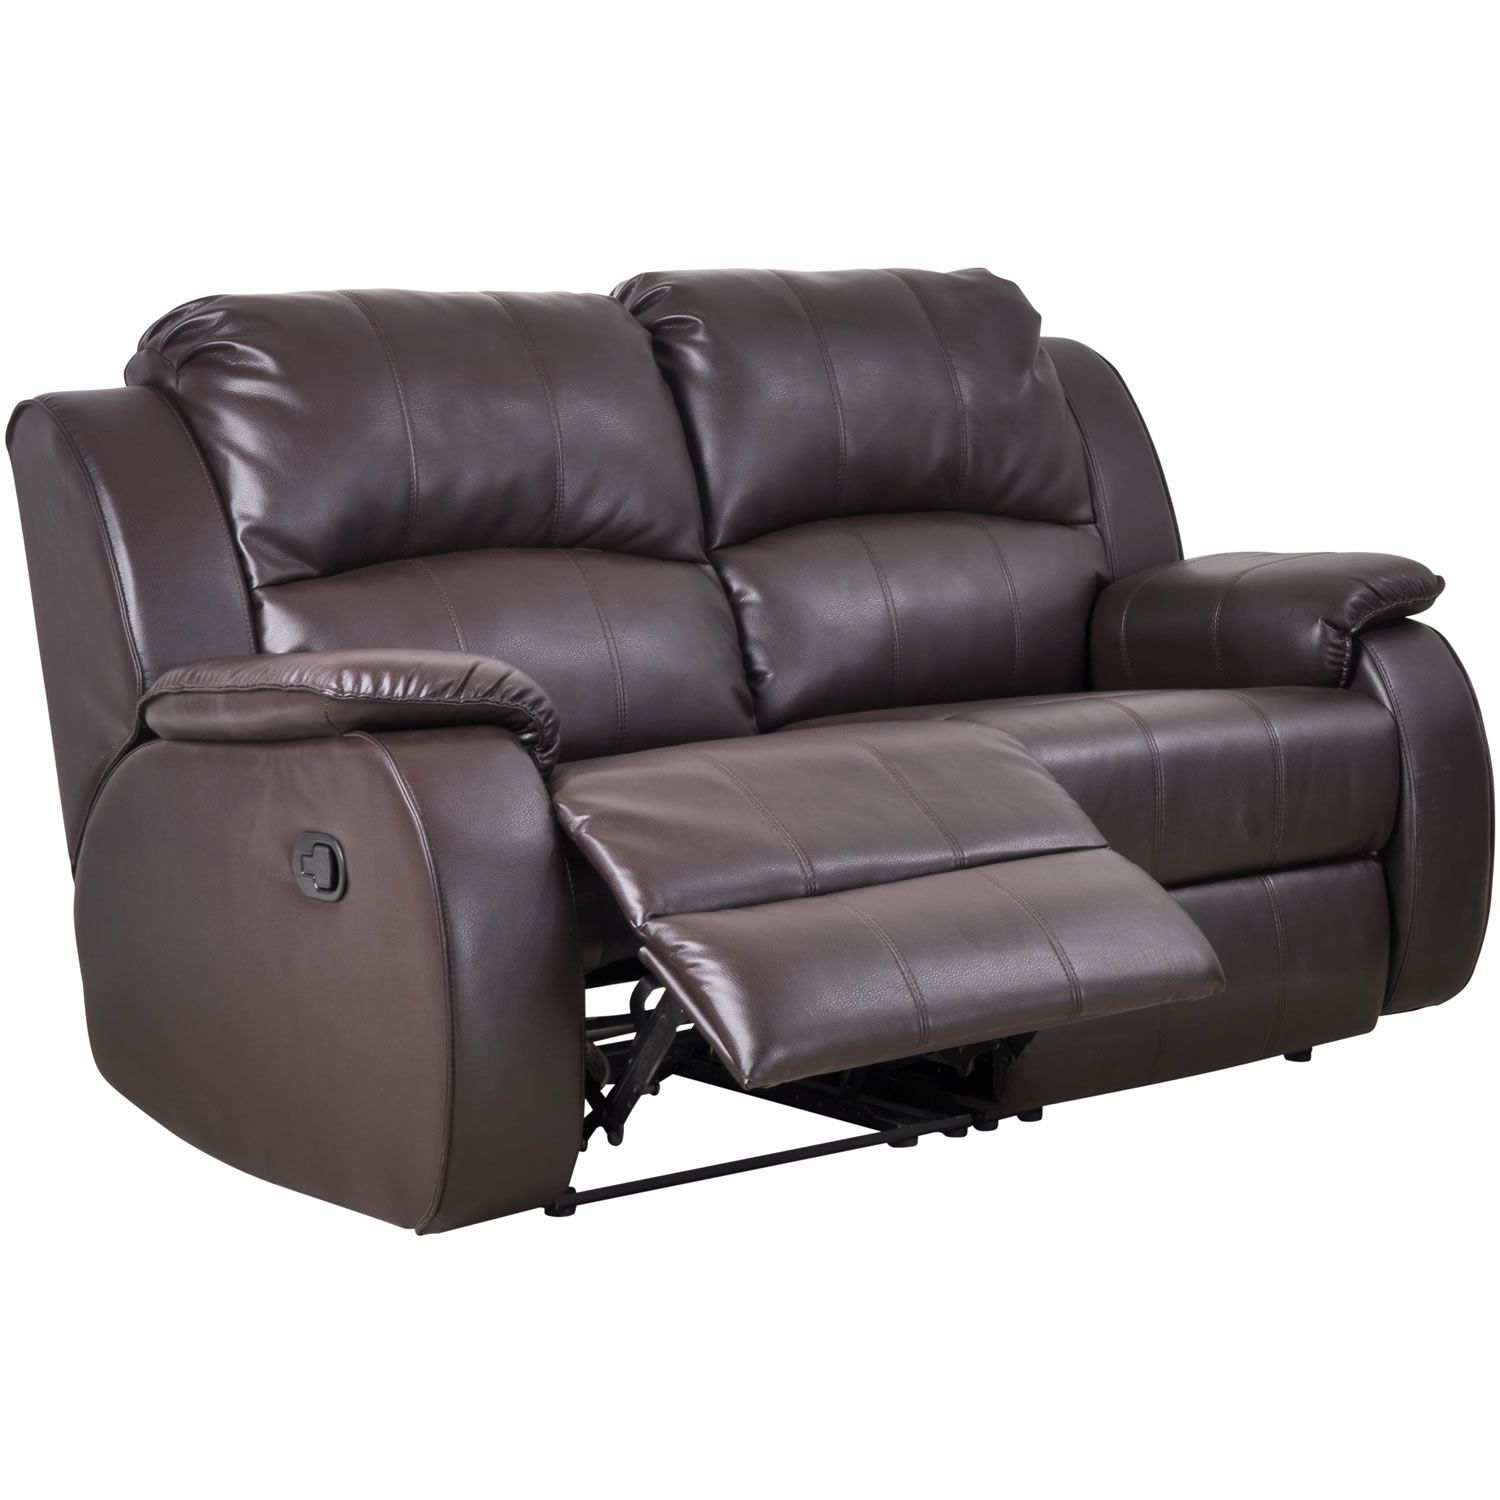 Milano Recliner Leather 3 Seater + 2 Seater Sofa Suite Set